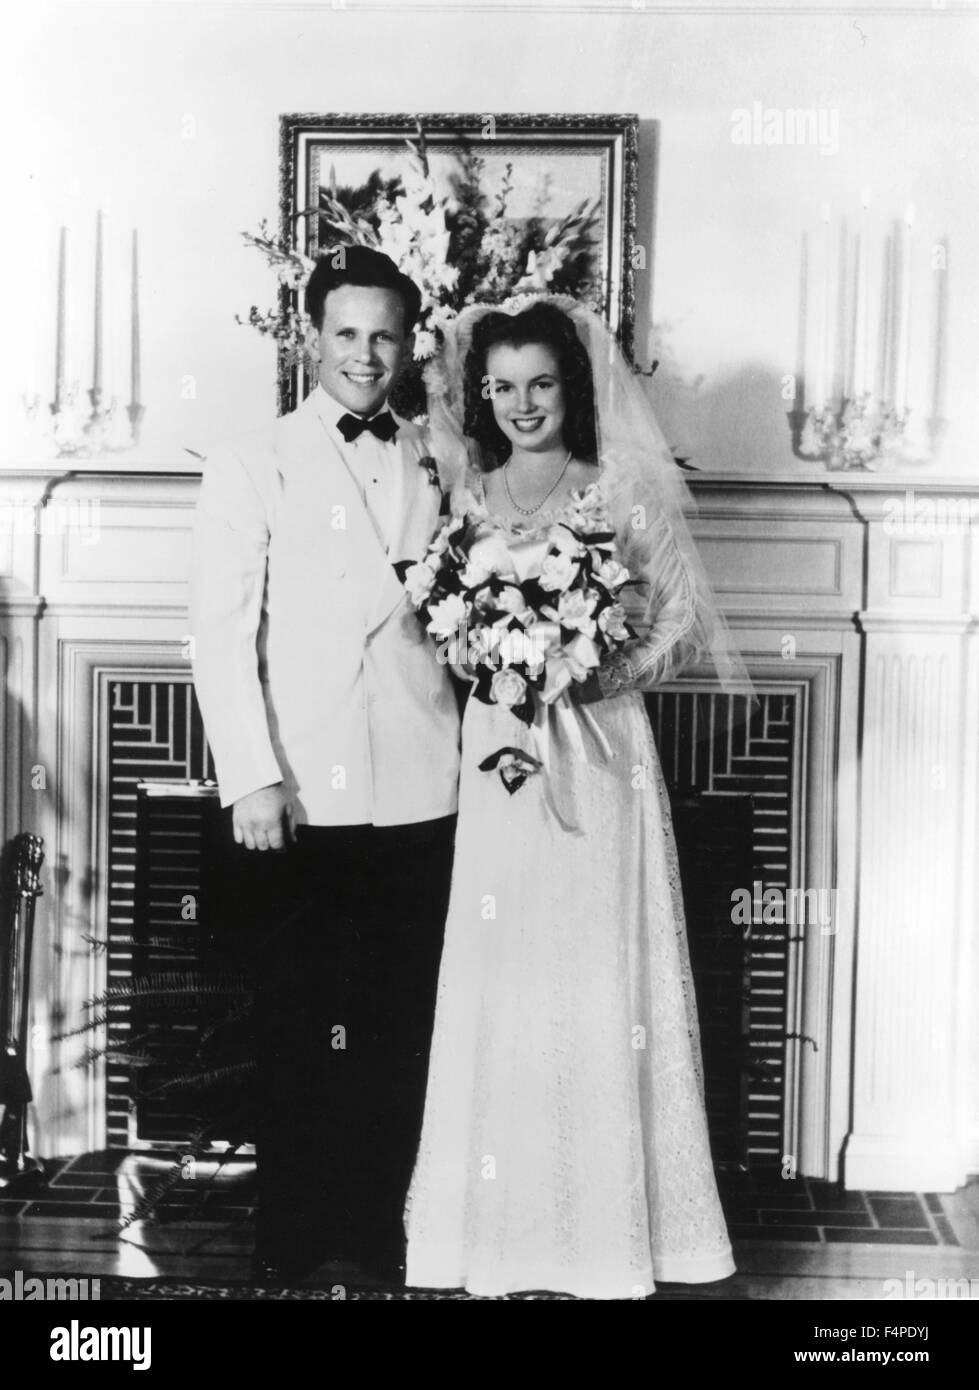 Mariage of Marilyn Monroe and James Dougherty - Stock Image